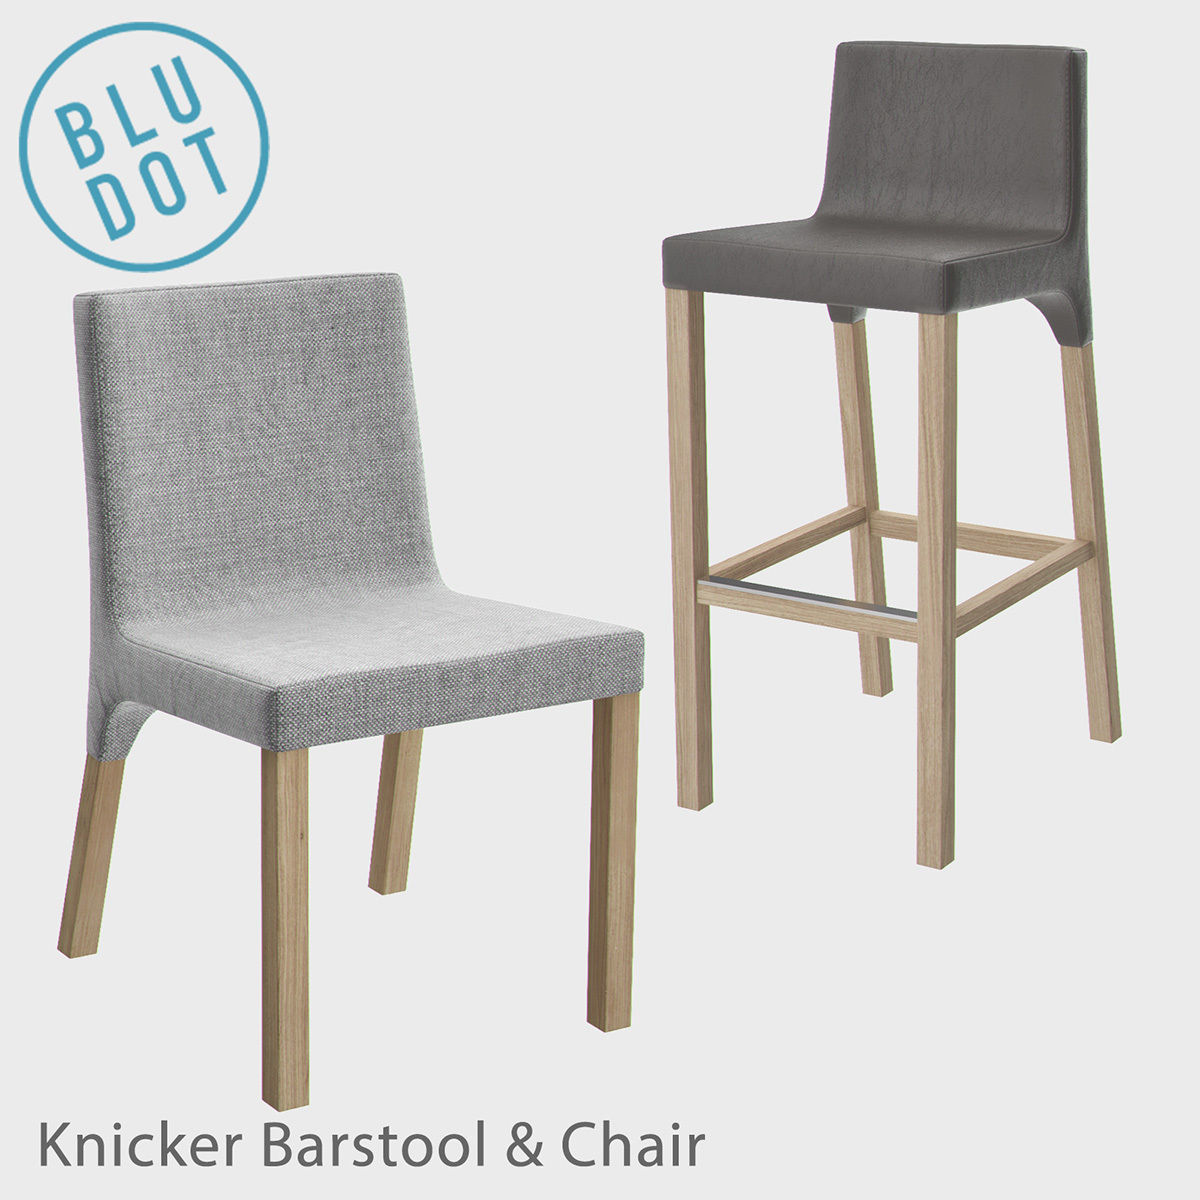 3d model blu dot knicker barstool and chair cgtrader